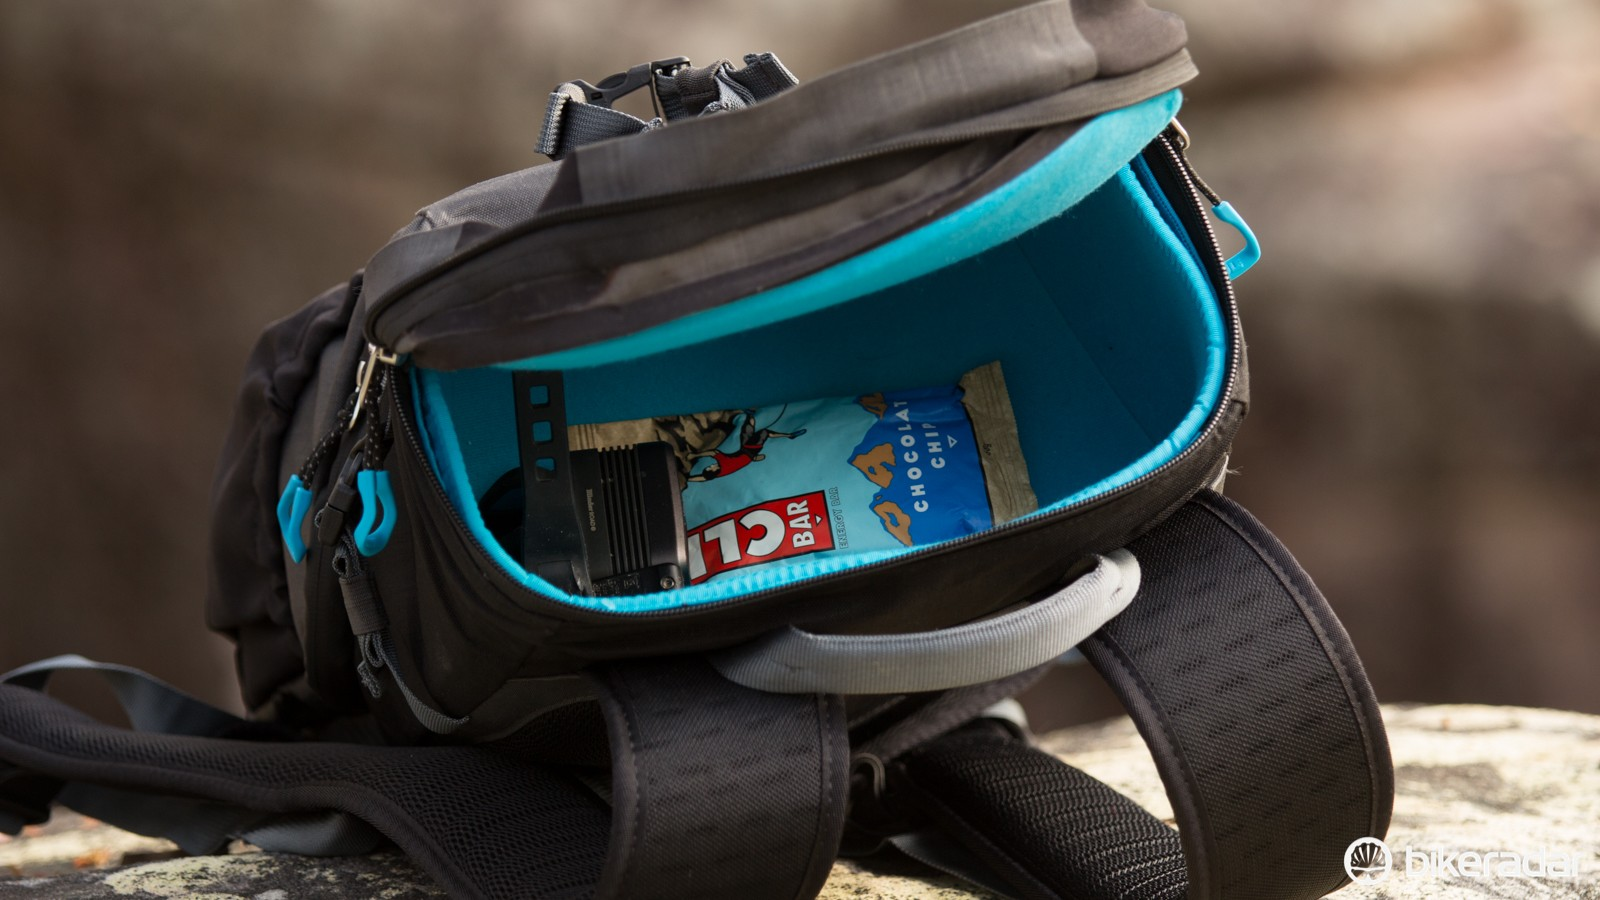 A semi-rigid top compartment offers space for a jacket, food and other small essentials